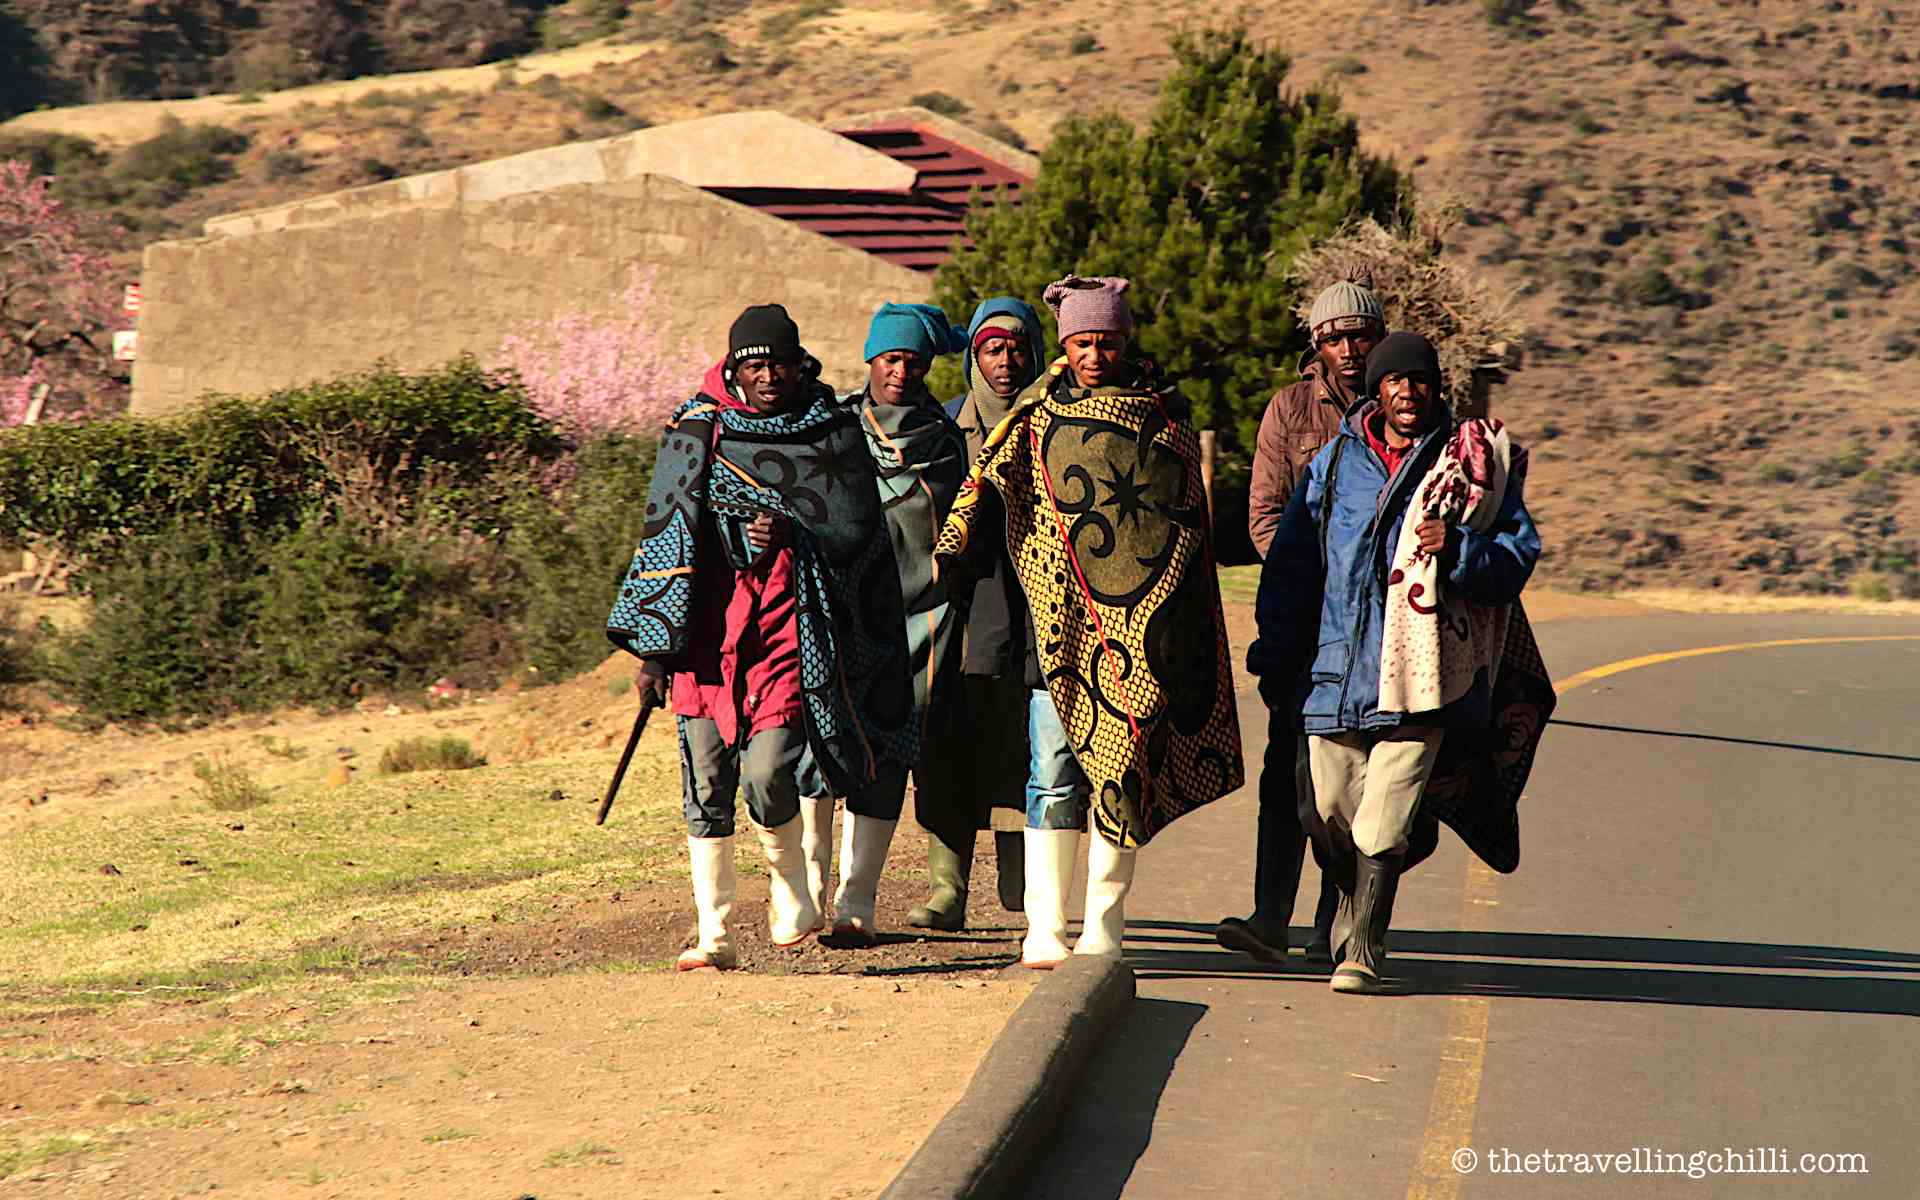 Photo © thetravellingchilli.com | Basotho, the blanket people of Lesotho